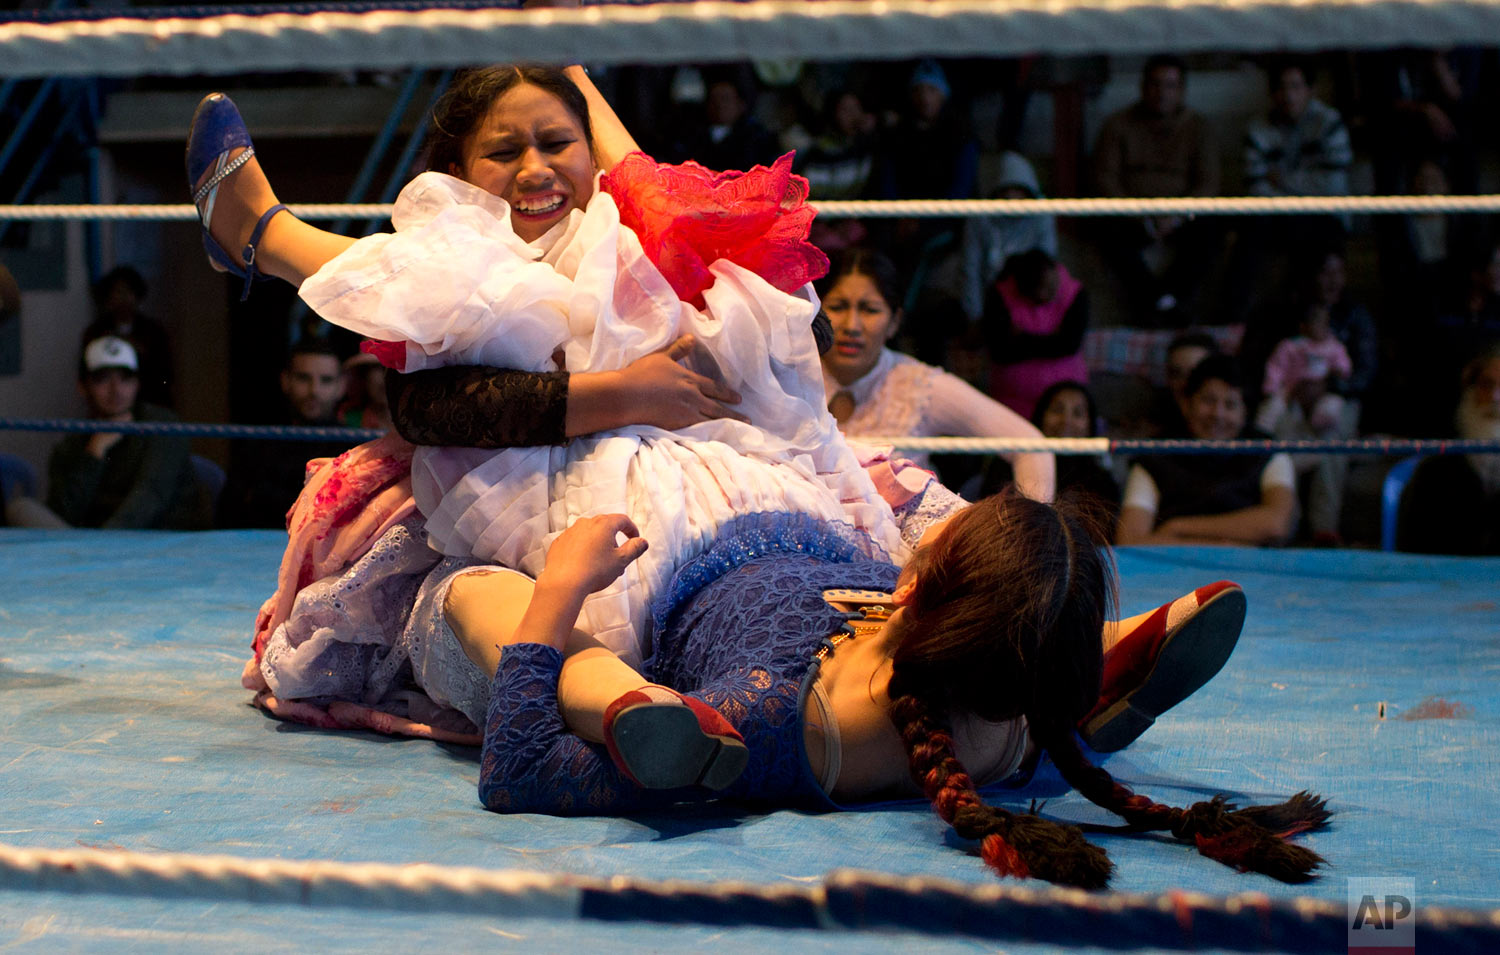 Young cholita wrestler Dona Chevas, 16, top, holds the legs of her rival, fellow trainee Simpatica Sonia, 24, as they compete in the ring in El Alto, Bolivia, Thursday, Jan. 21, 2019. (AP Photo/Juan Karita)